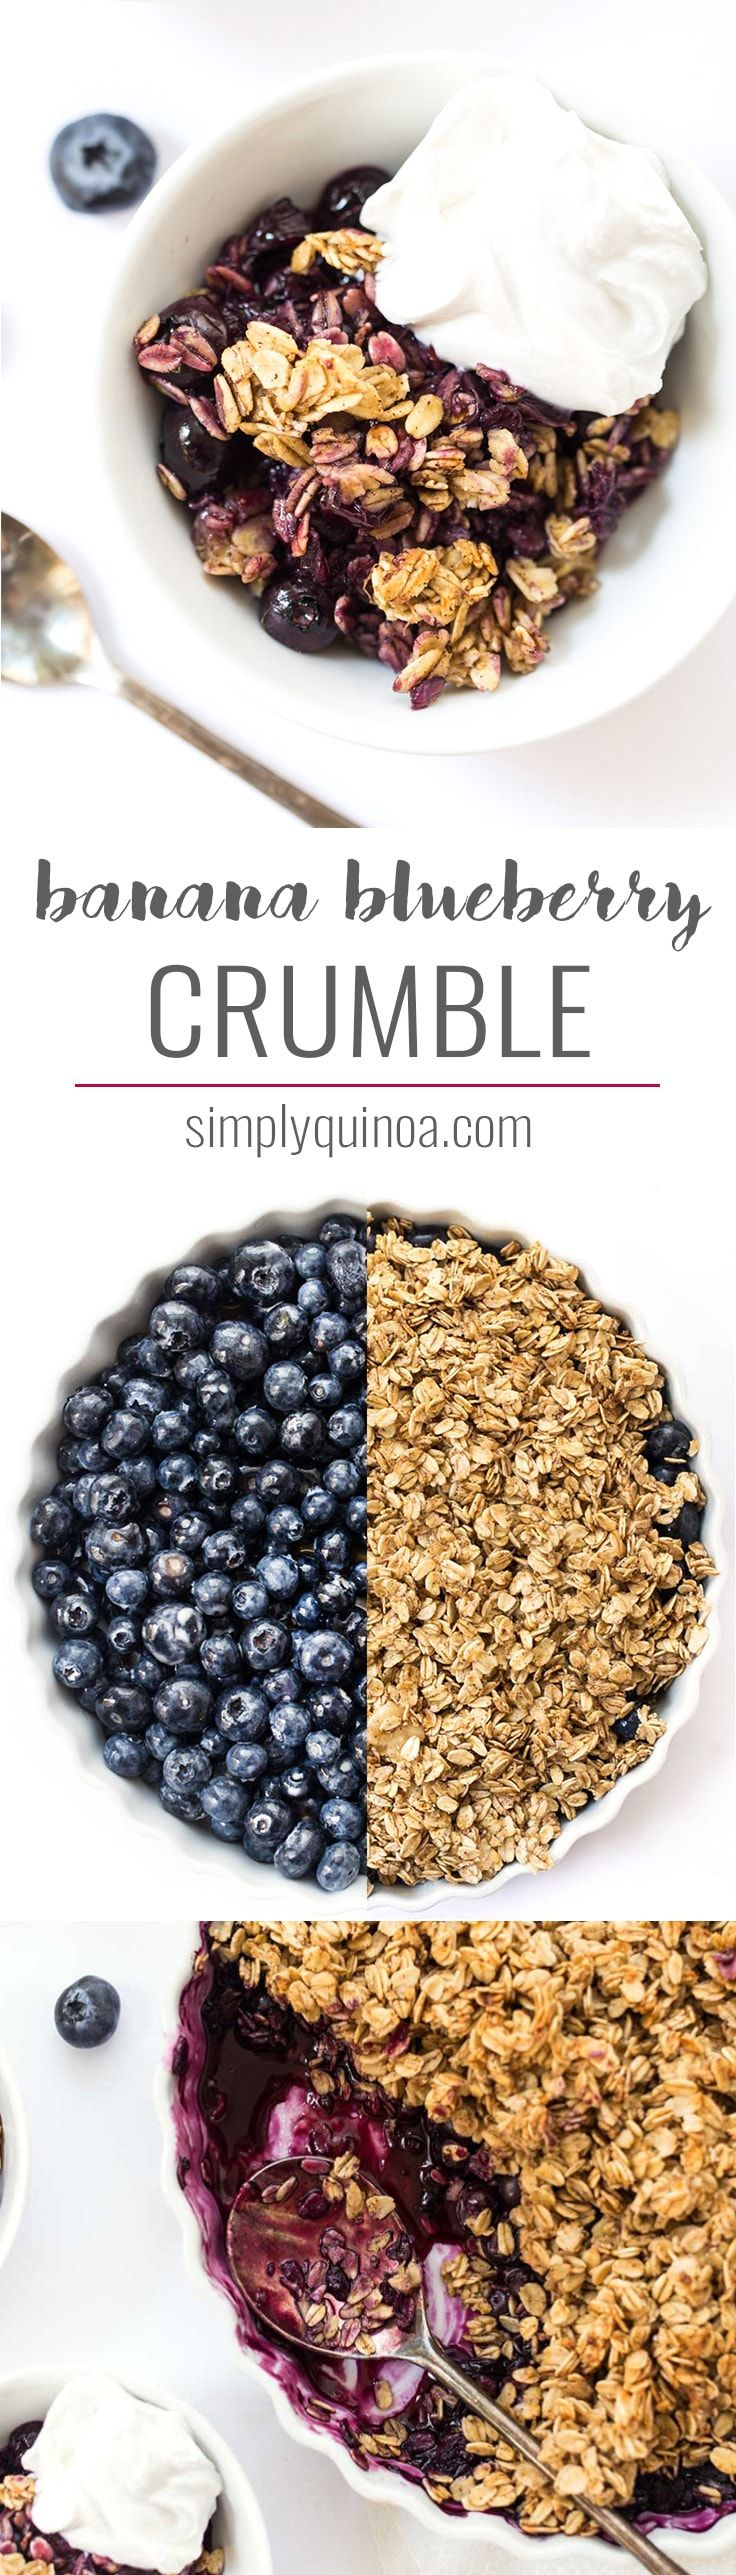 This BANANA BLUEBERRY CRUMBLE is a quick and easy summer dessert that everyone will love. It's light, healthy, vegan, and uses just 1/4 cup of sweetener!